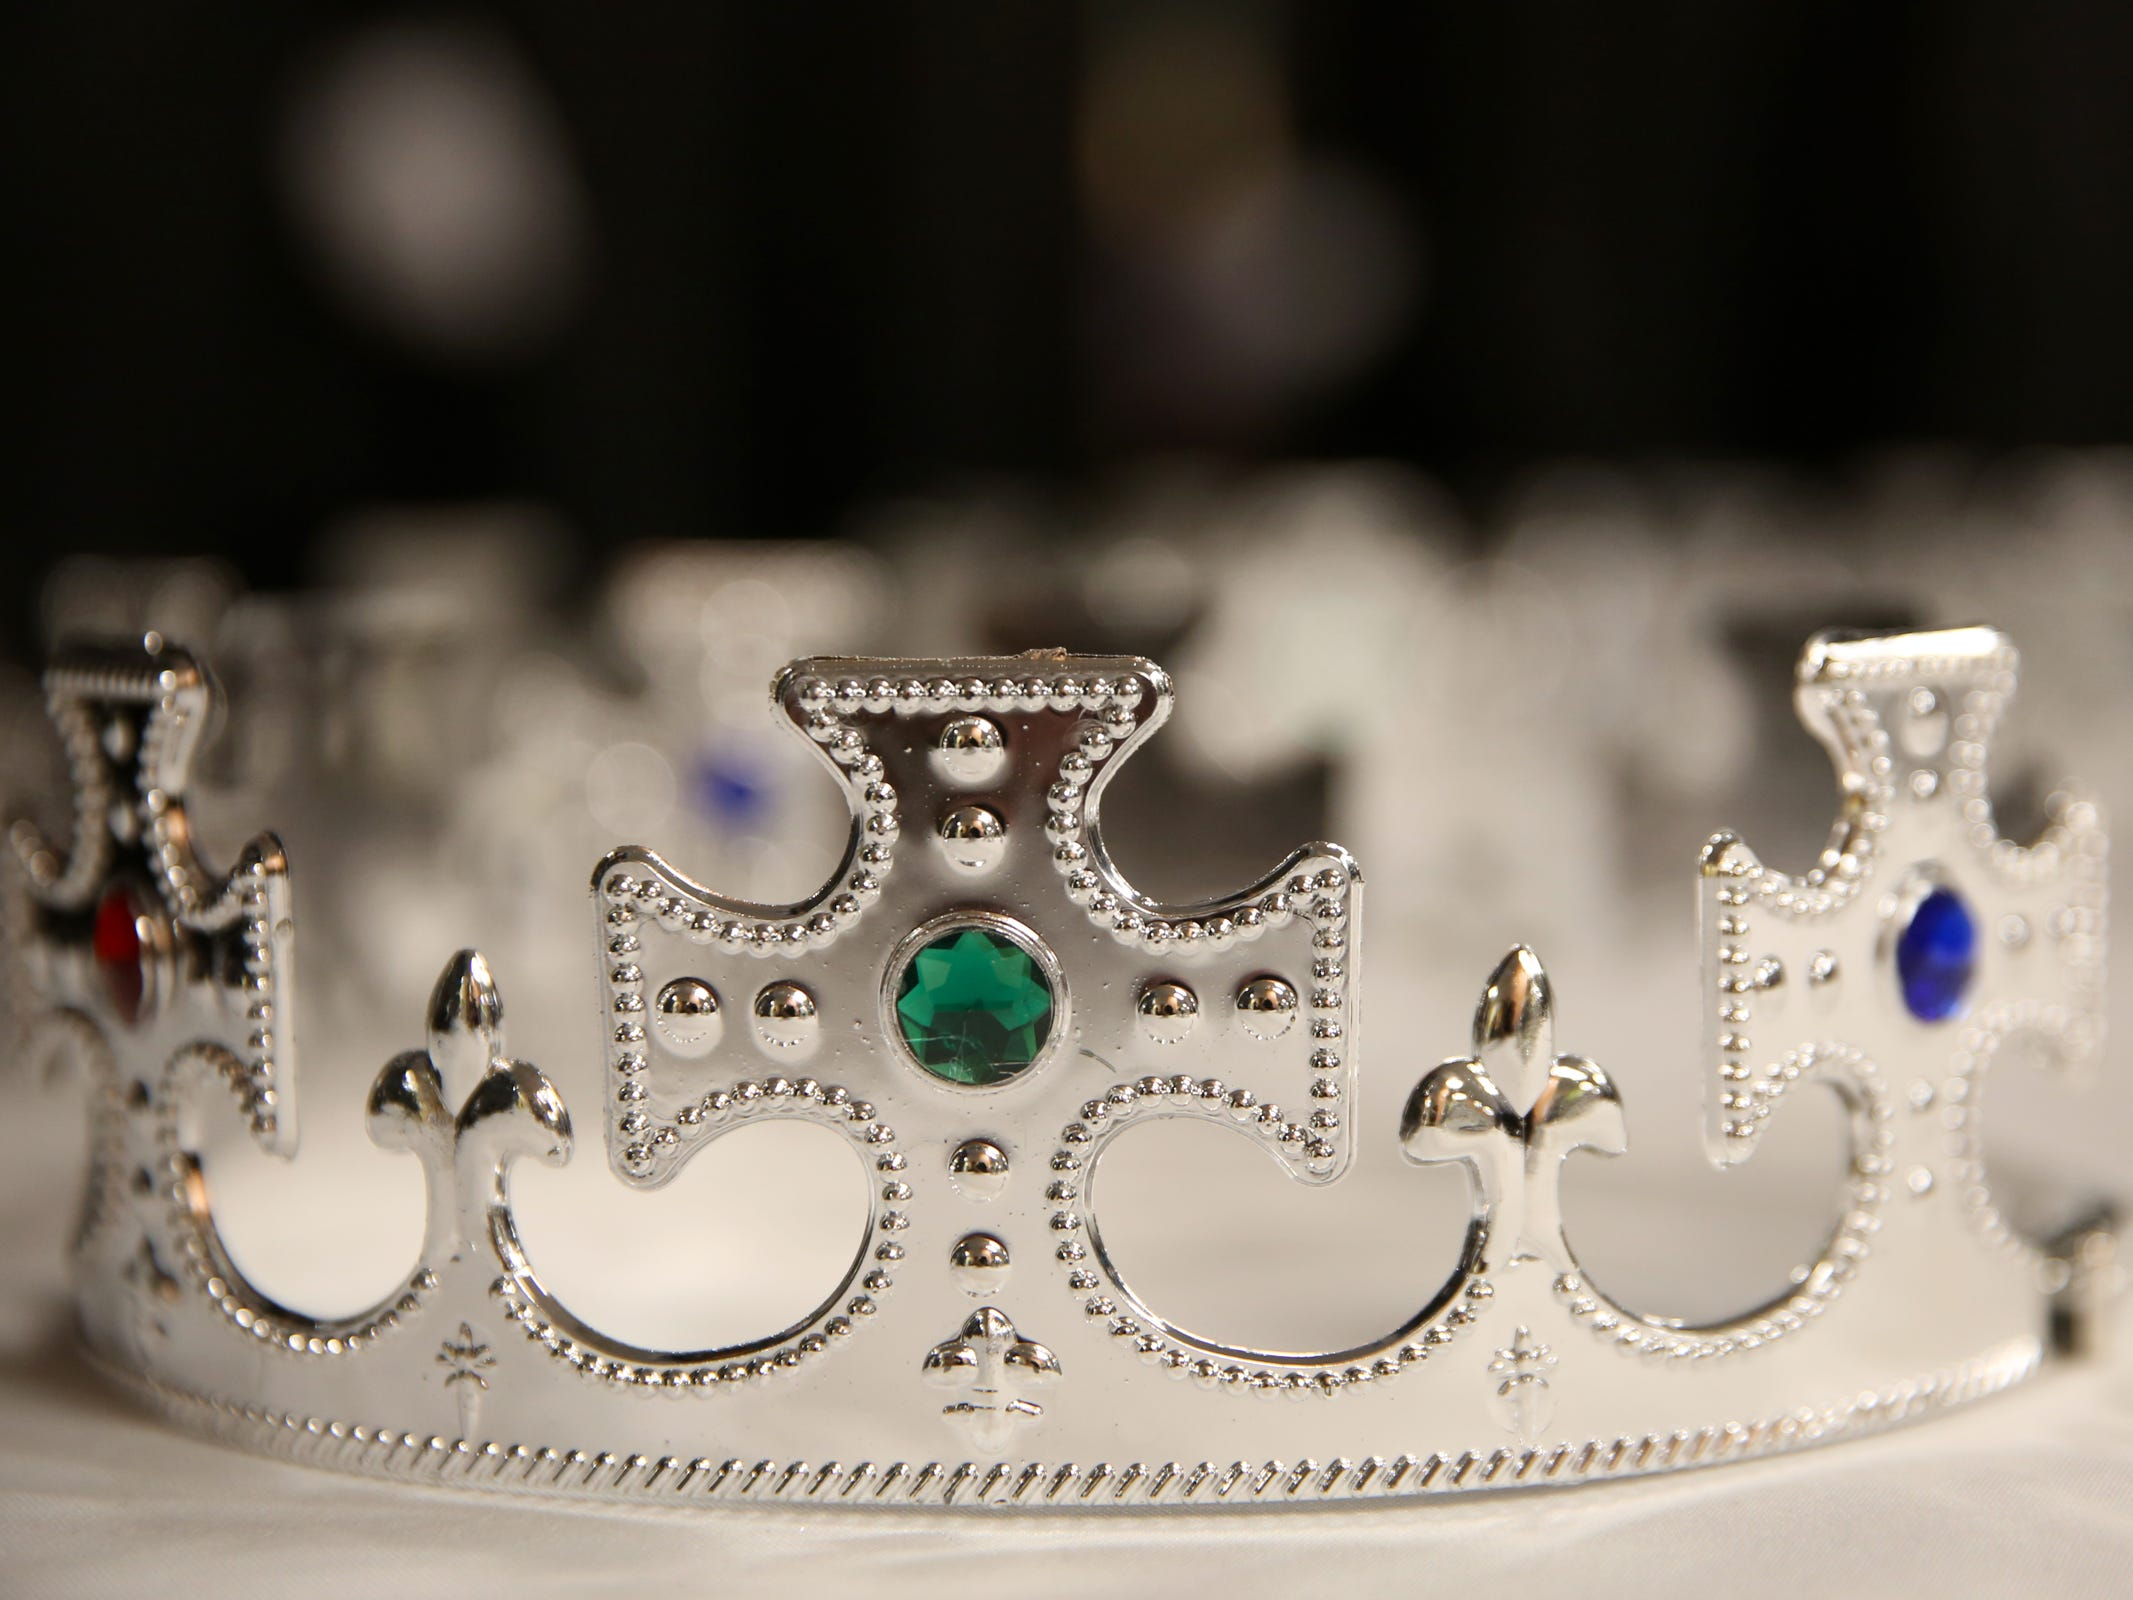 Crowns and tiaras were given out to attendees during Night to Shine, a prom night experience for people with special needs, at Salem Alliance Church on Friday, Feb. 8, 2019.